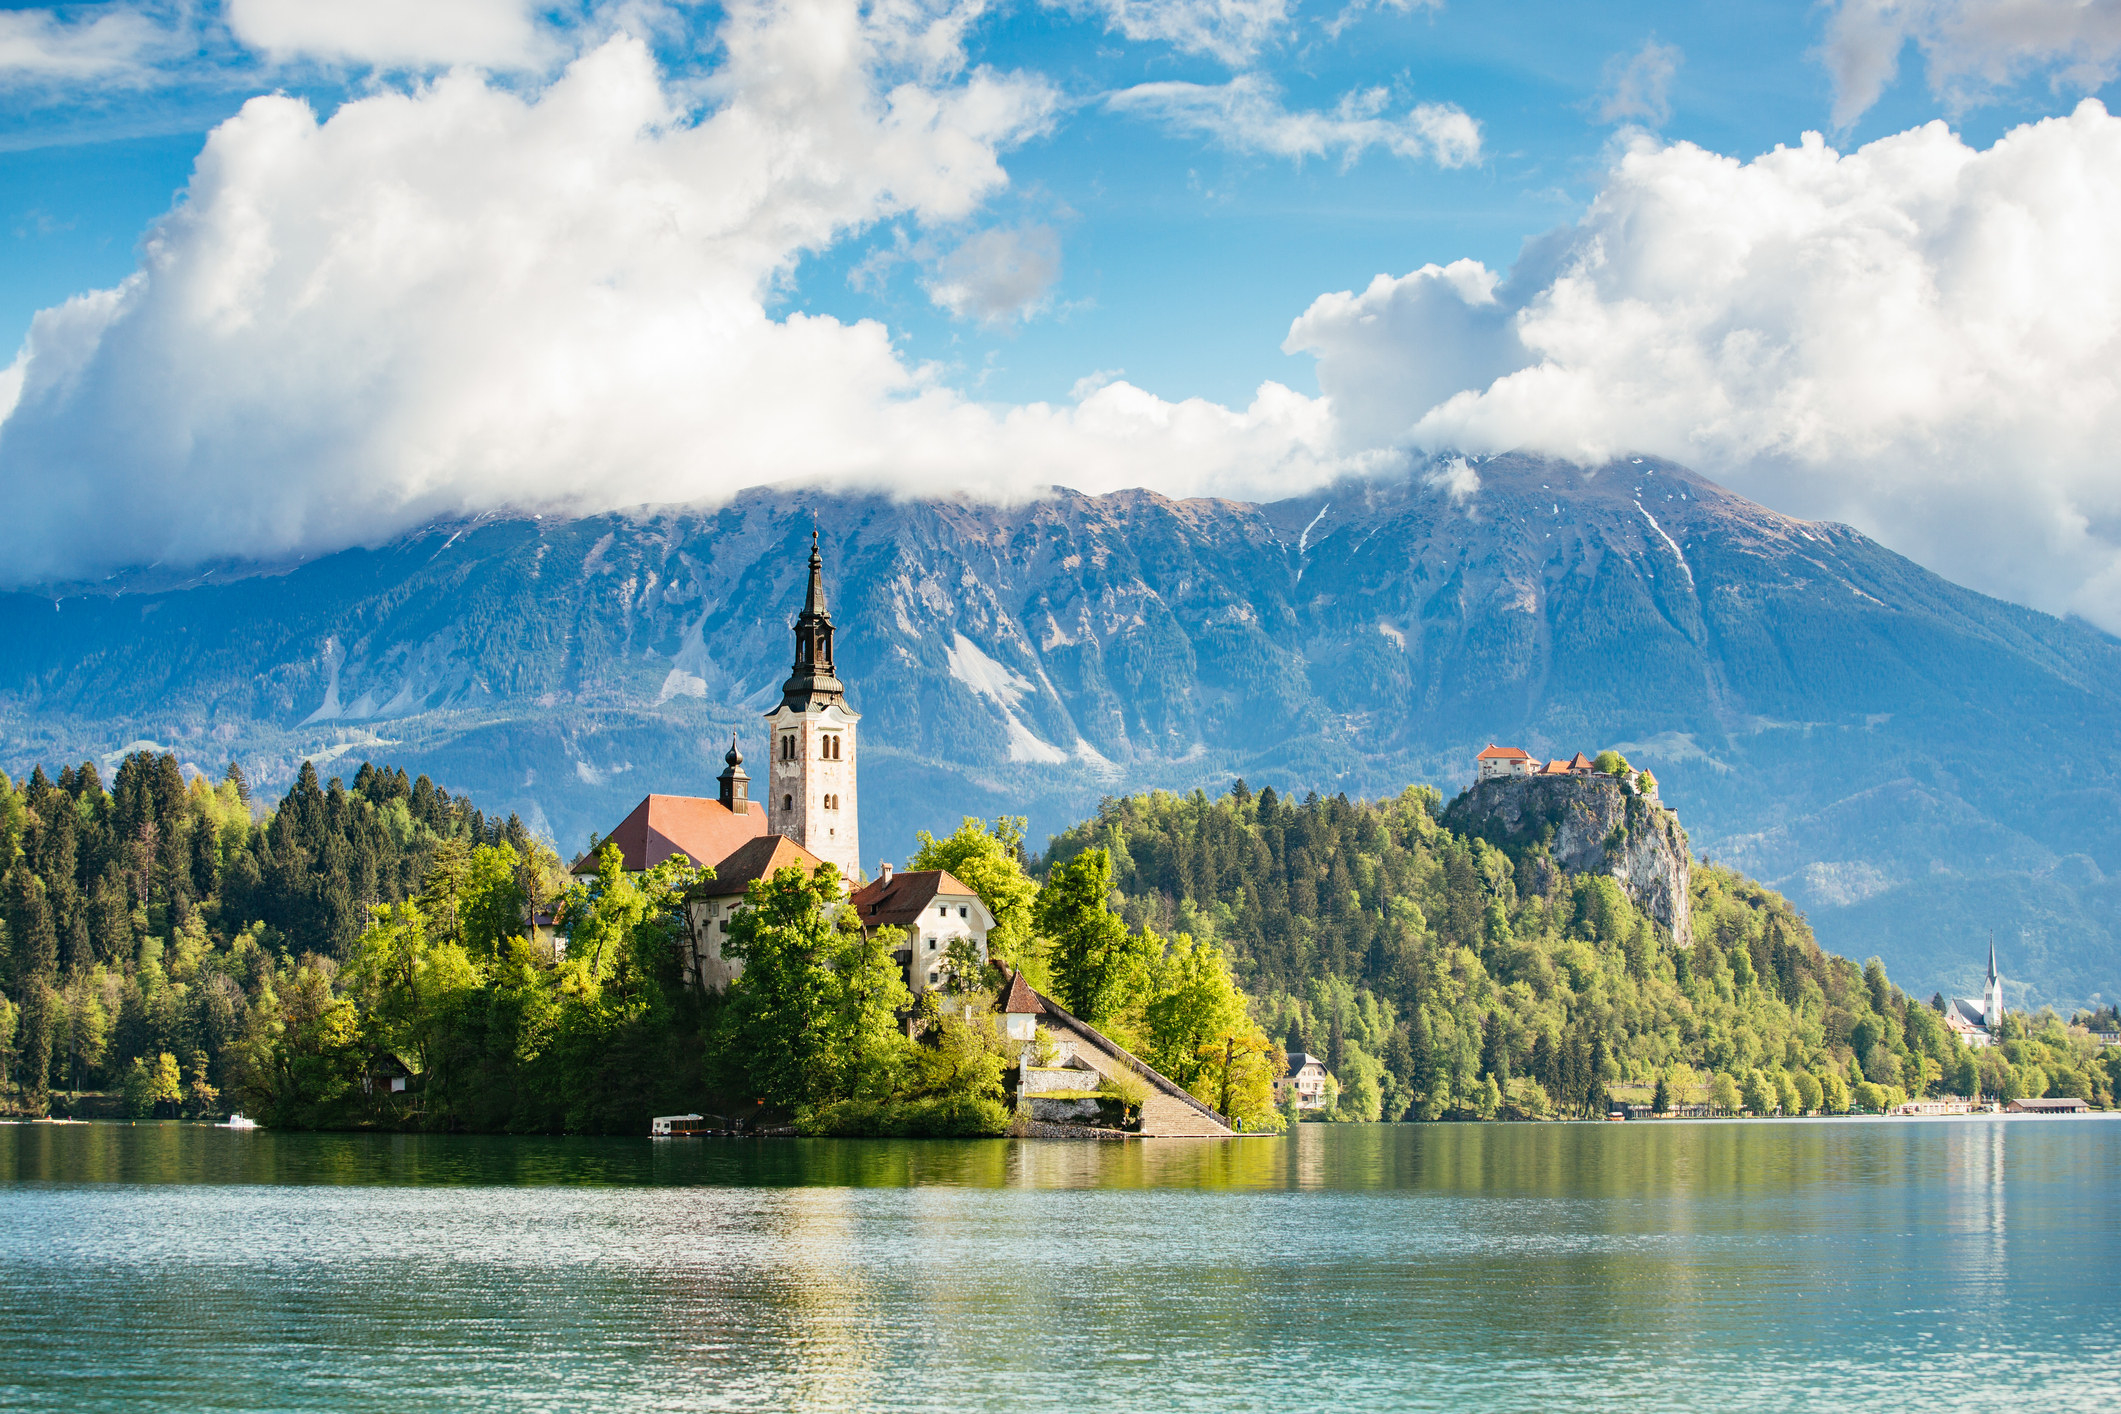 An iconic view of Lake Bled in Slovenia.